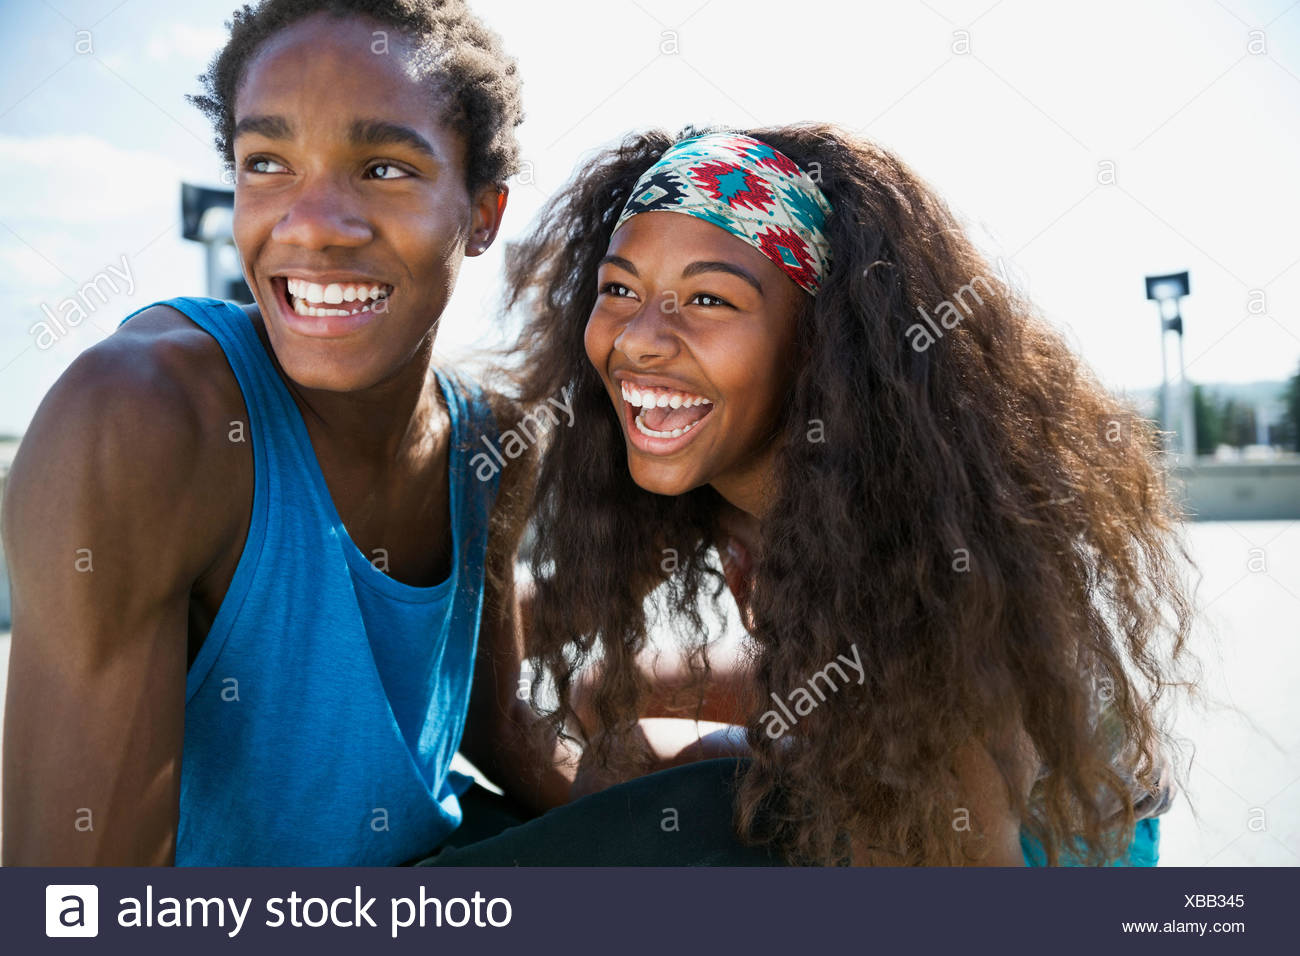 Teenage couple laughing outdoors Photo Stock